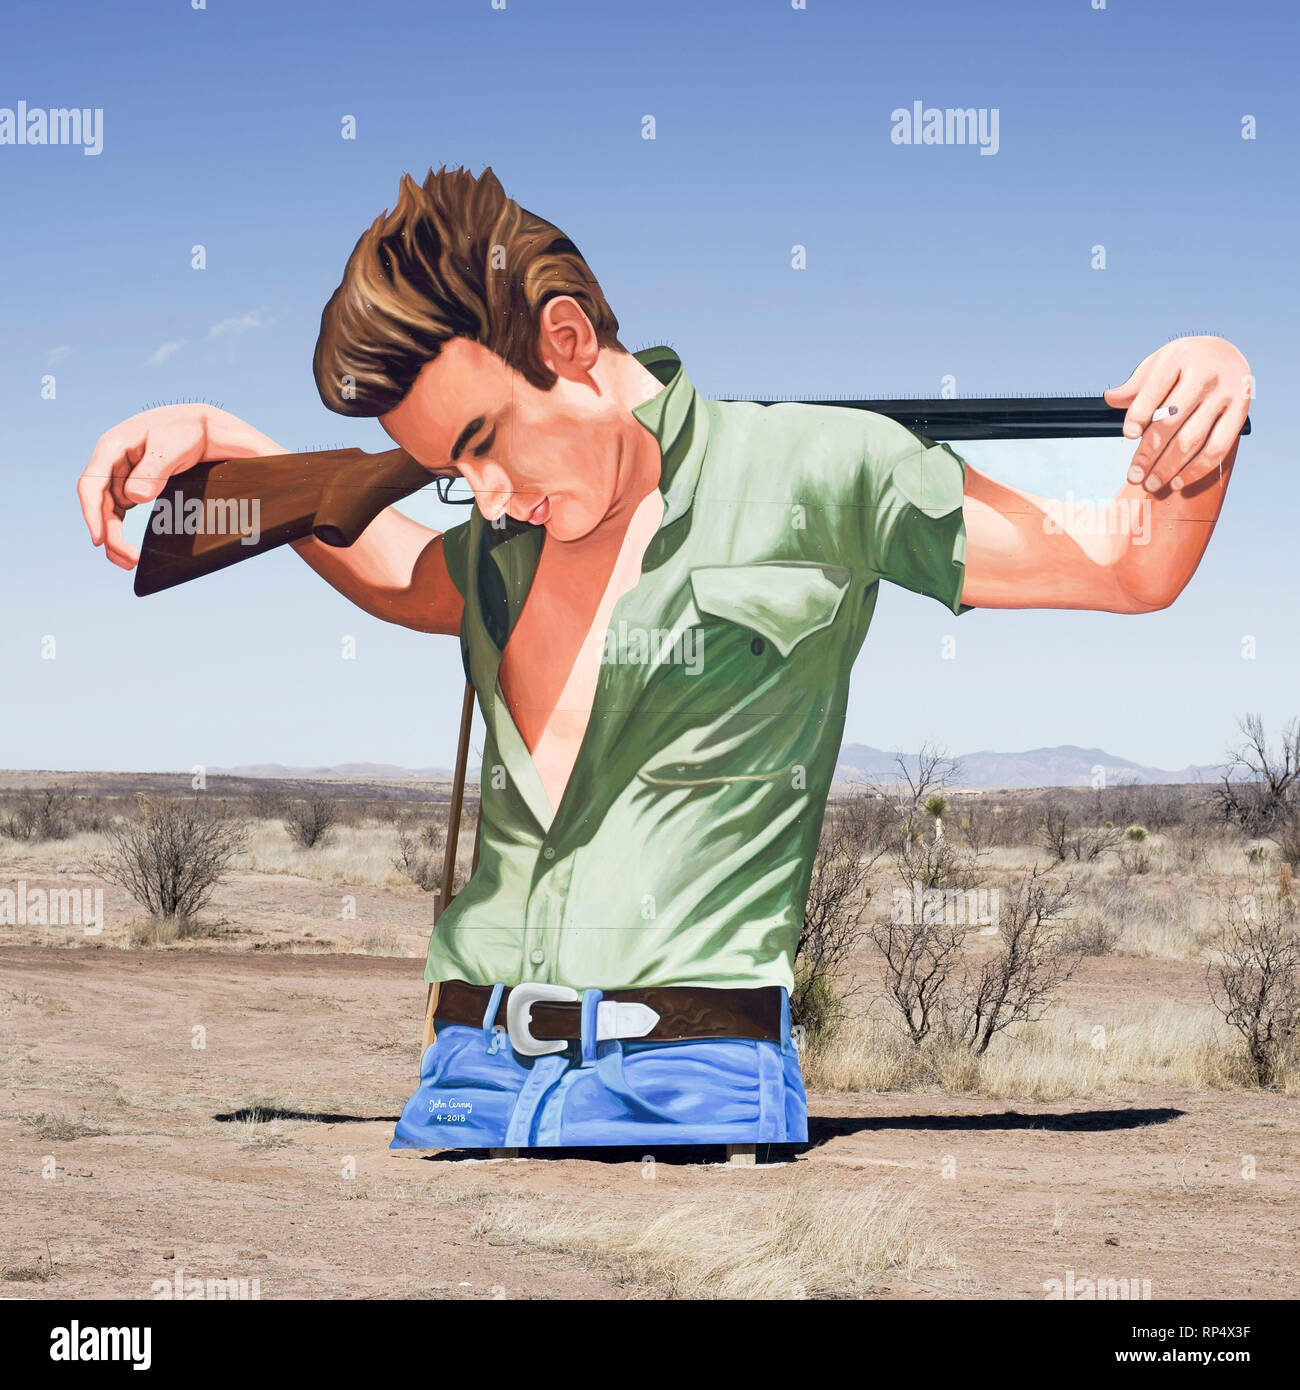 Cut-out effigy of actor James Dean, part of an open air exhibition on the site in west Texas where the movie Giant was filmed - Stock Image